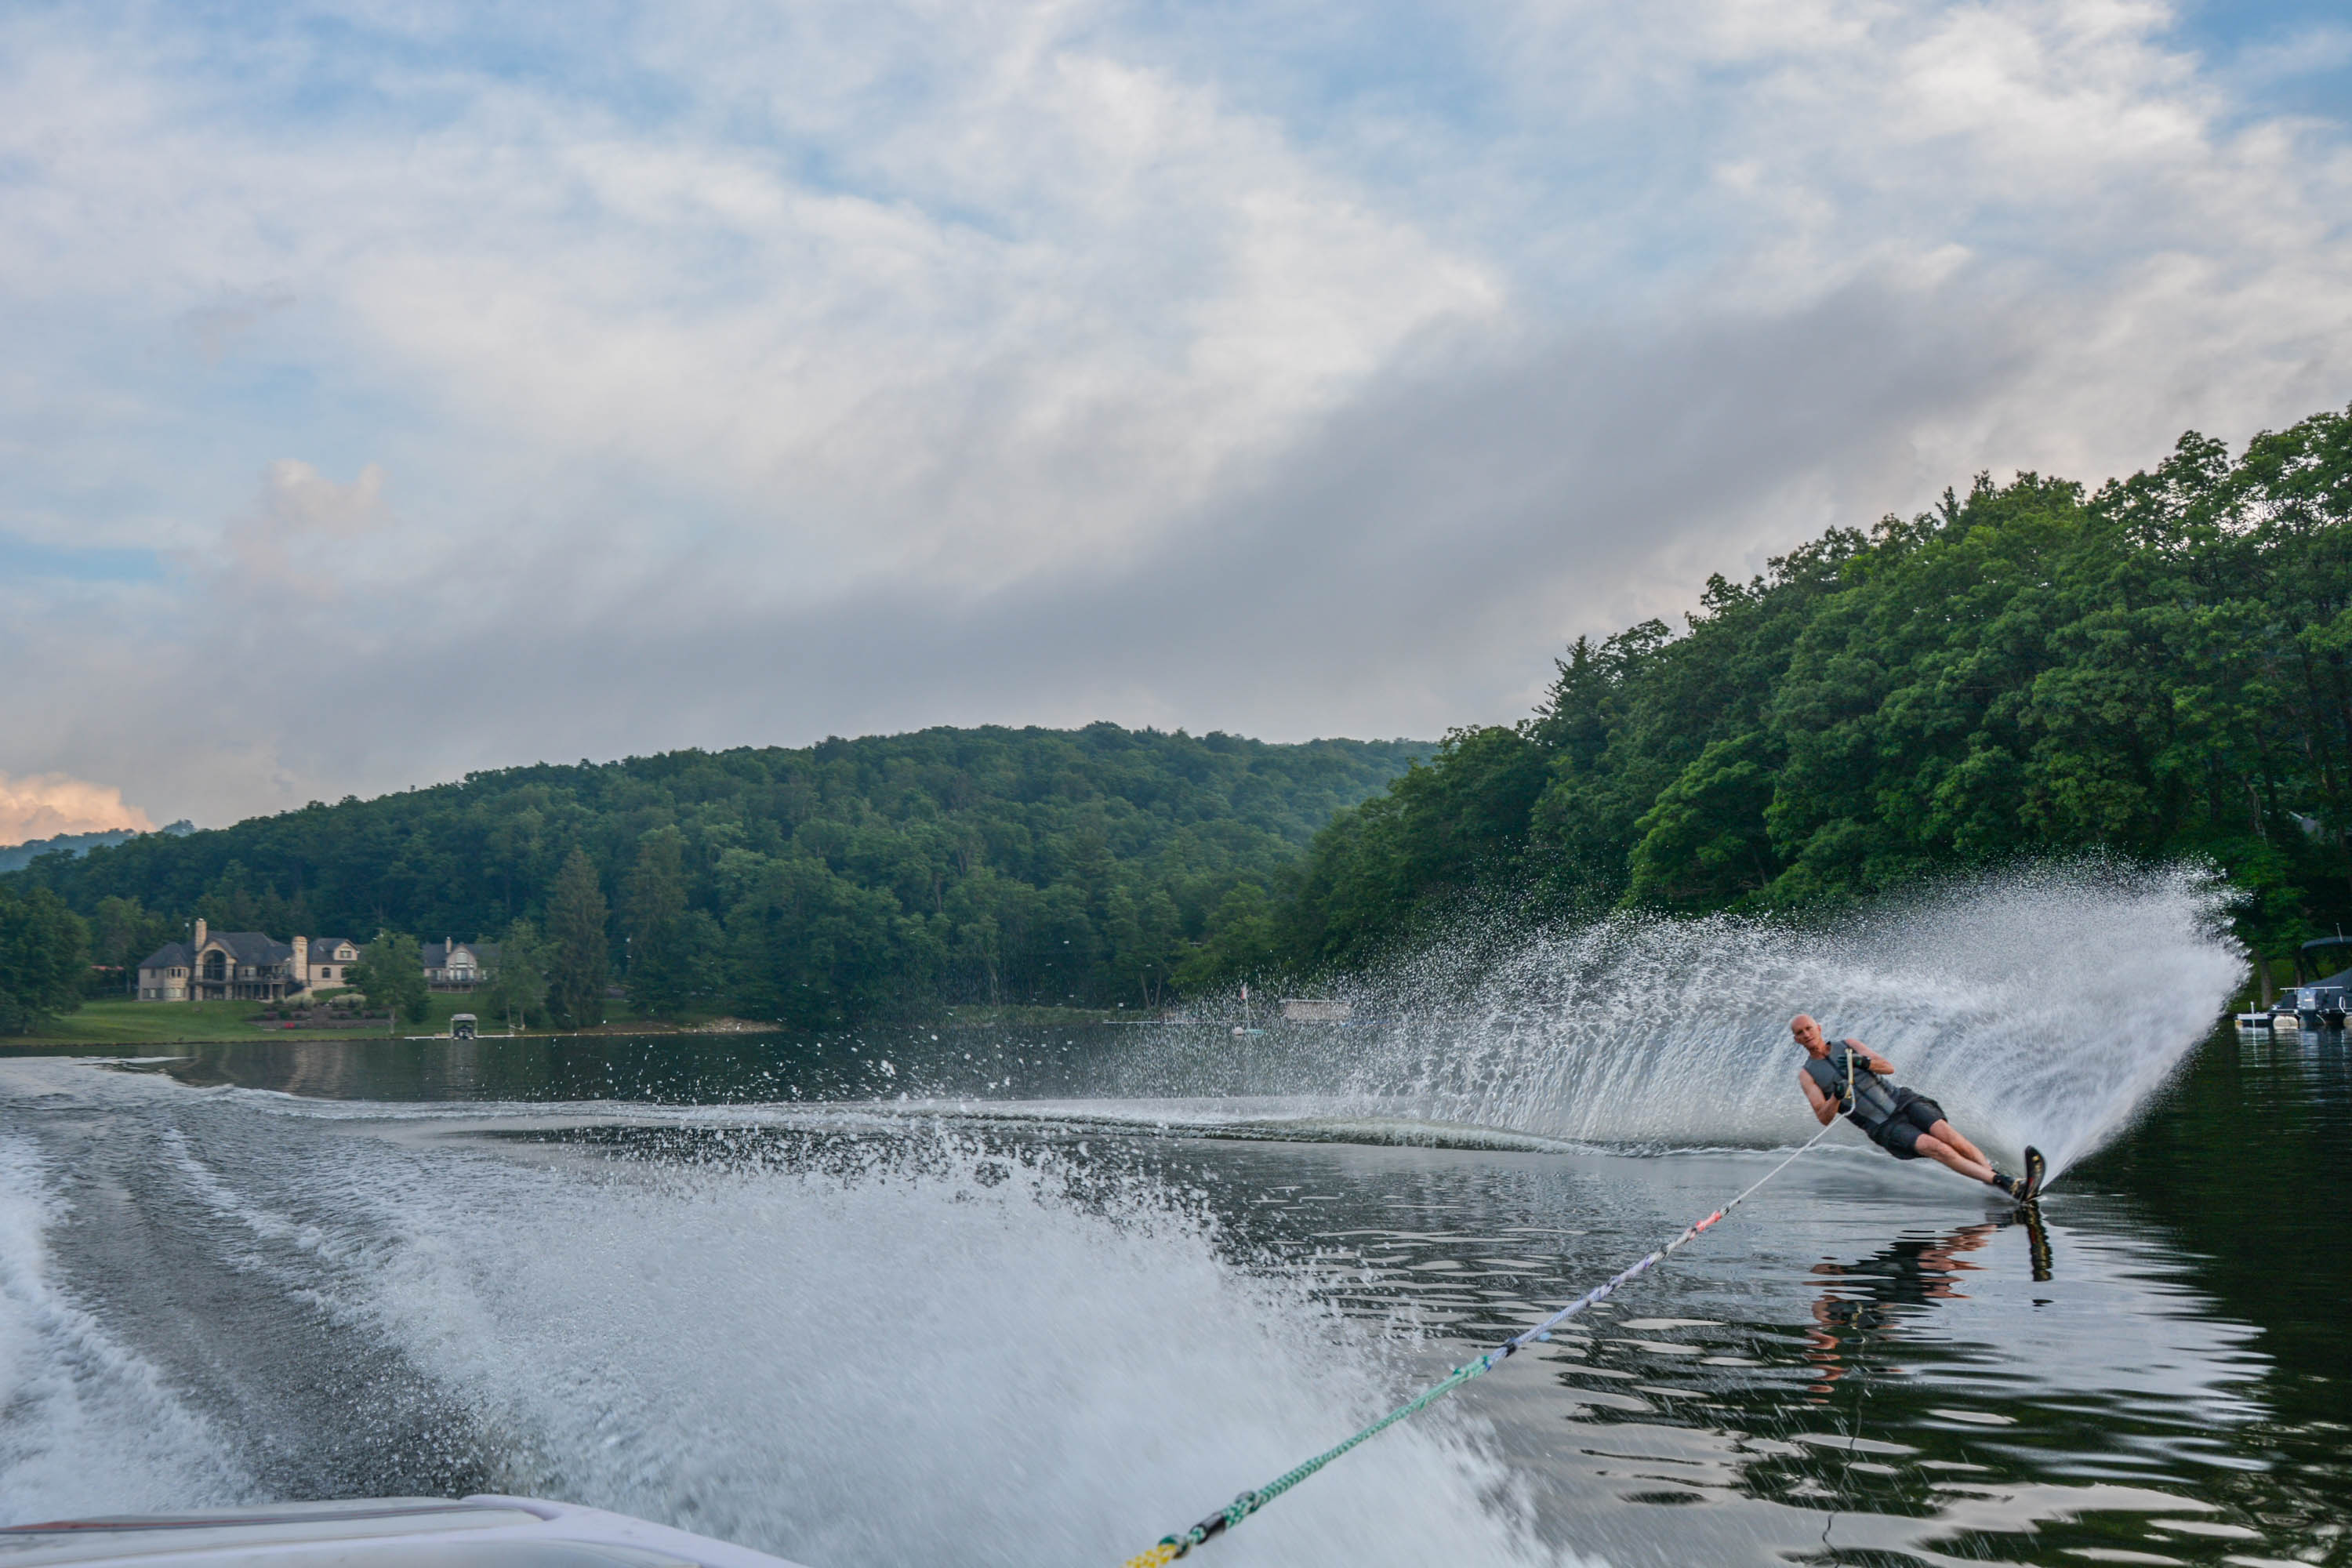 Water-Skiing on Deep Creek Lake